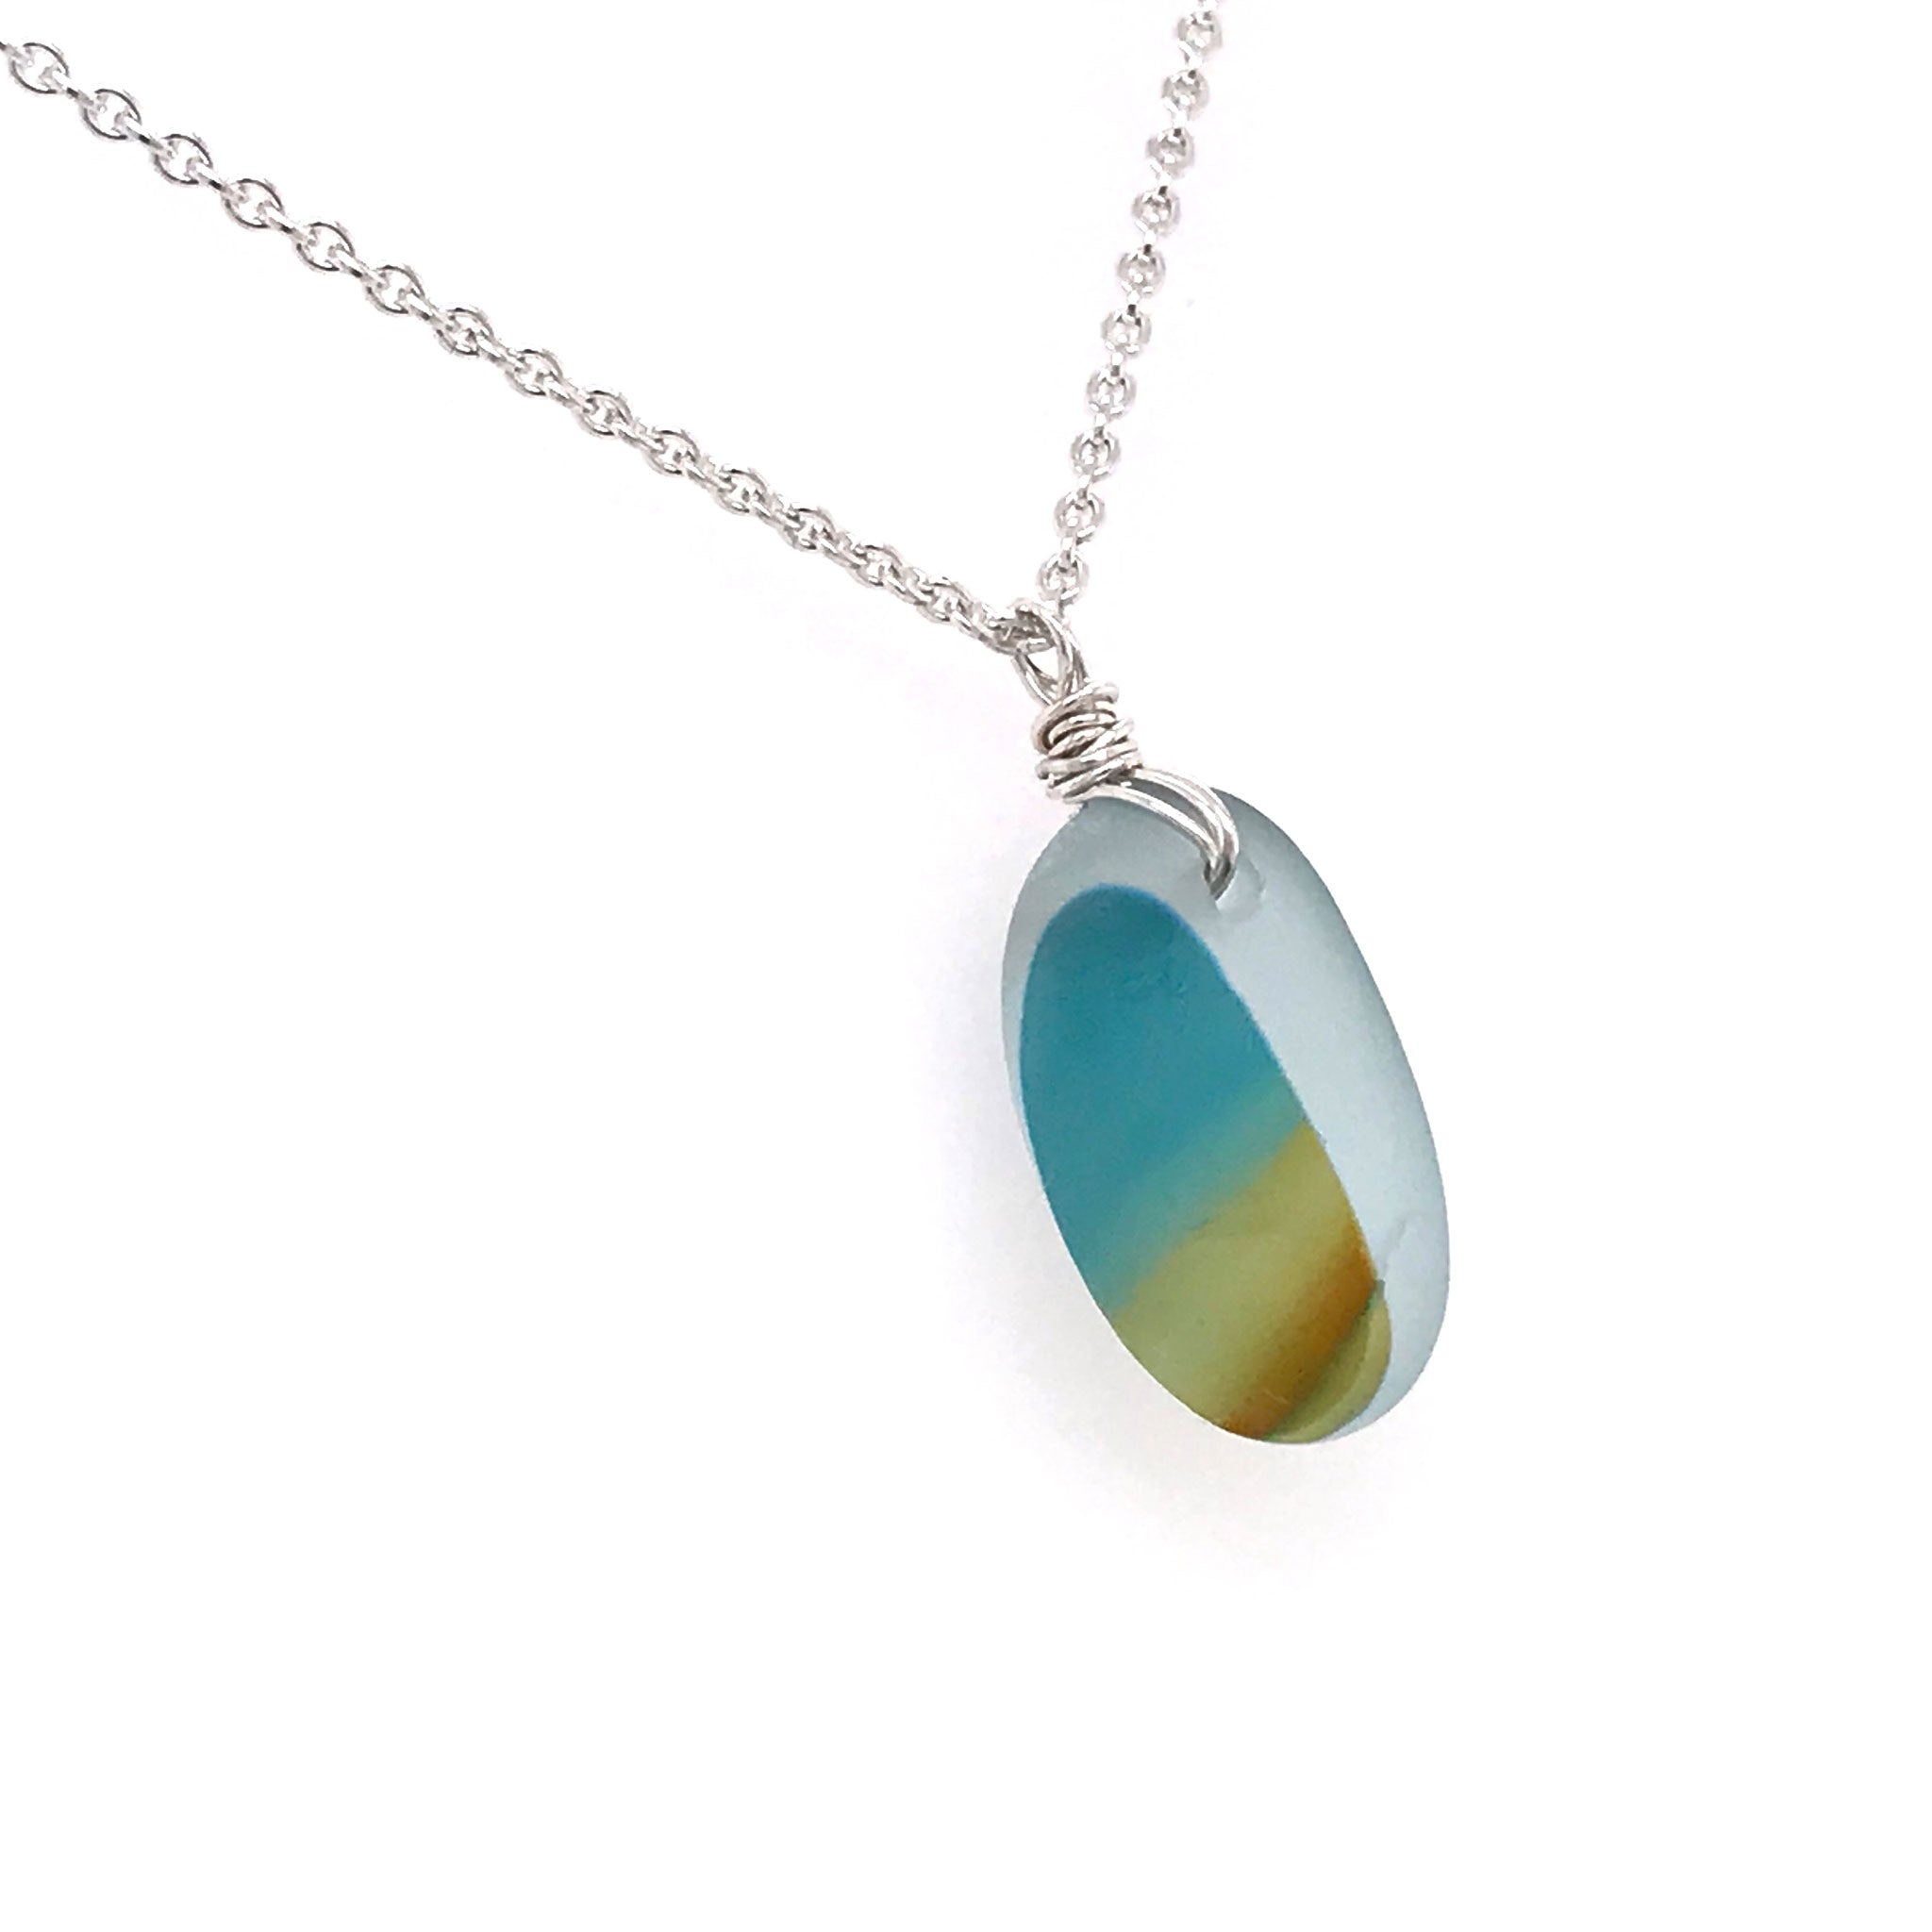 teal and amber multi-coloured seaglass necklace on sterling silver chain Kriket Broadhurst jewelry